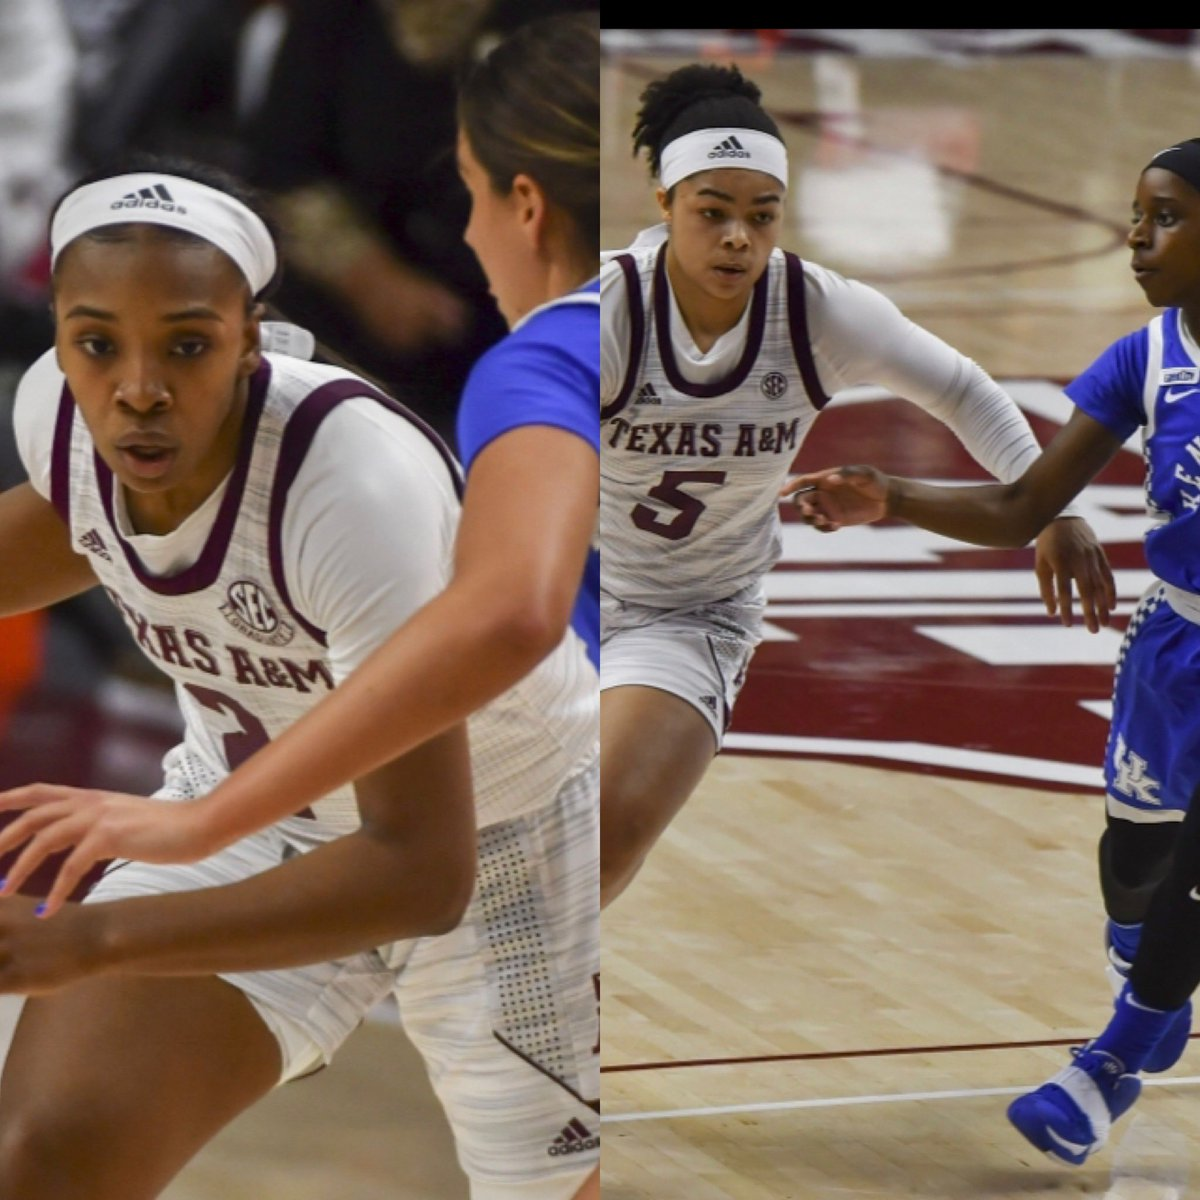 """""""She @ShakeJordan lives in the gym too. Between her and Wilson @aaliwilson2 I can't keep those two out of the gym. They're always in there getting extra shots up. """" -Gary Blair Every single day! Early morning or late night doesn't matter. #wininthedark #nosecretformula #until"""